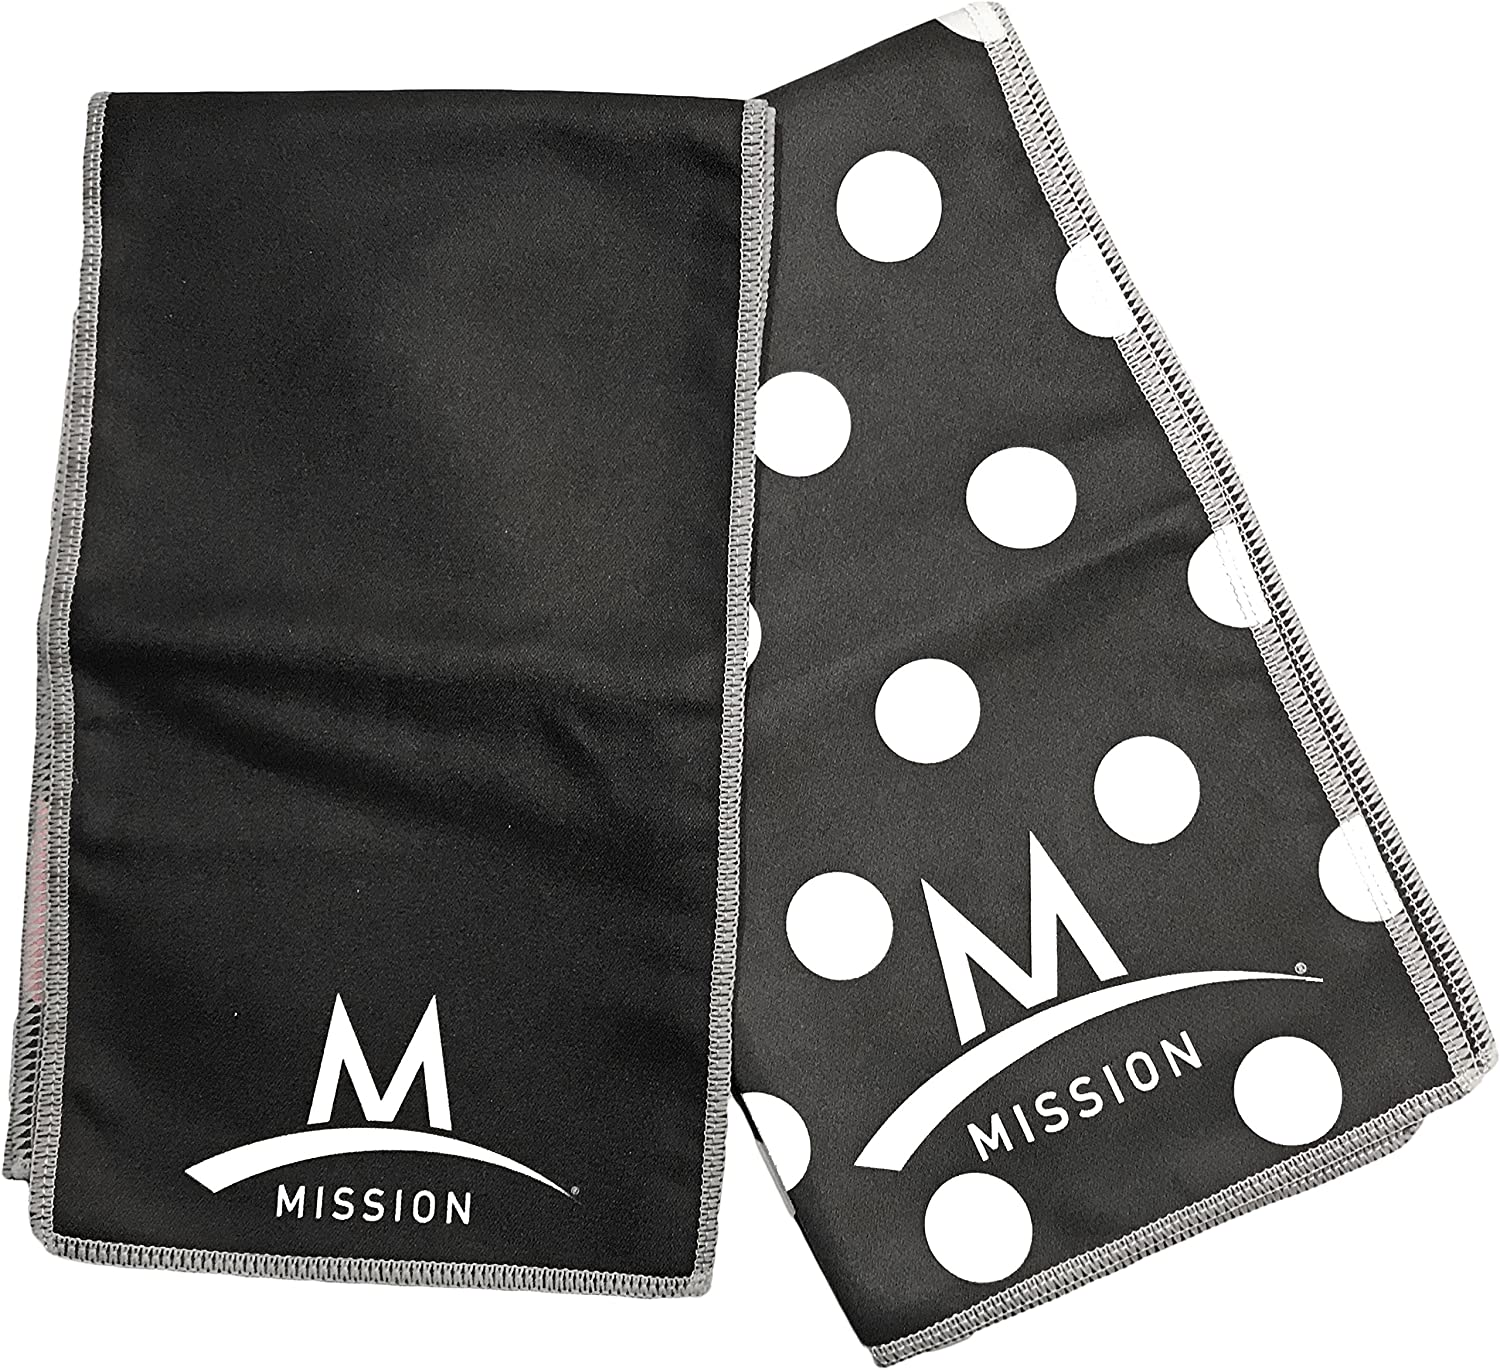 MISSION Enduracool Microfiber Cooling Towel Sets